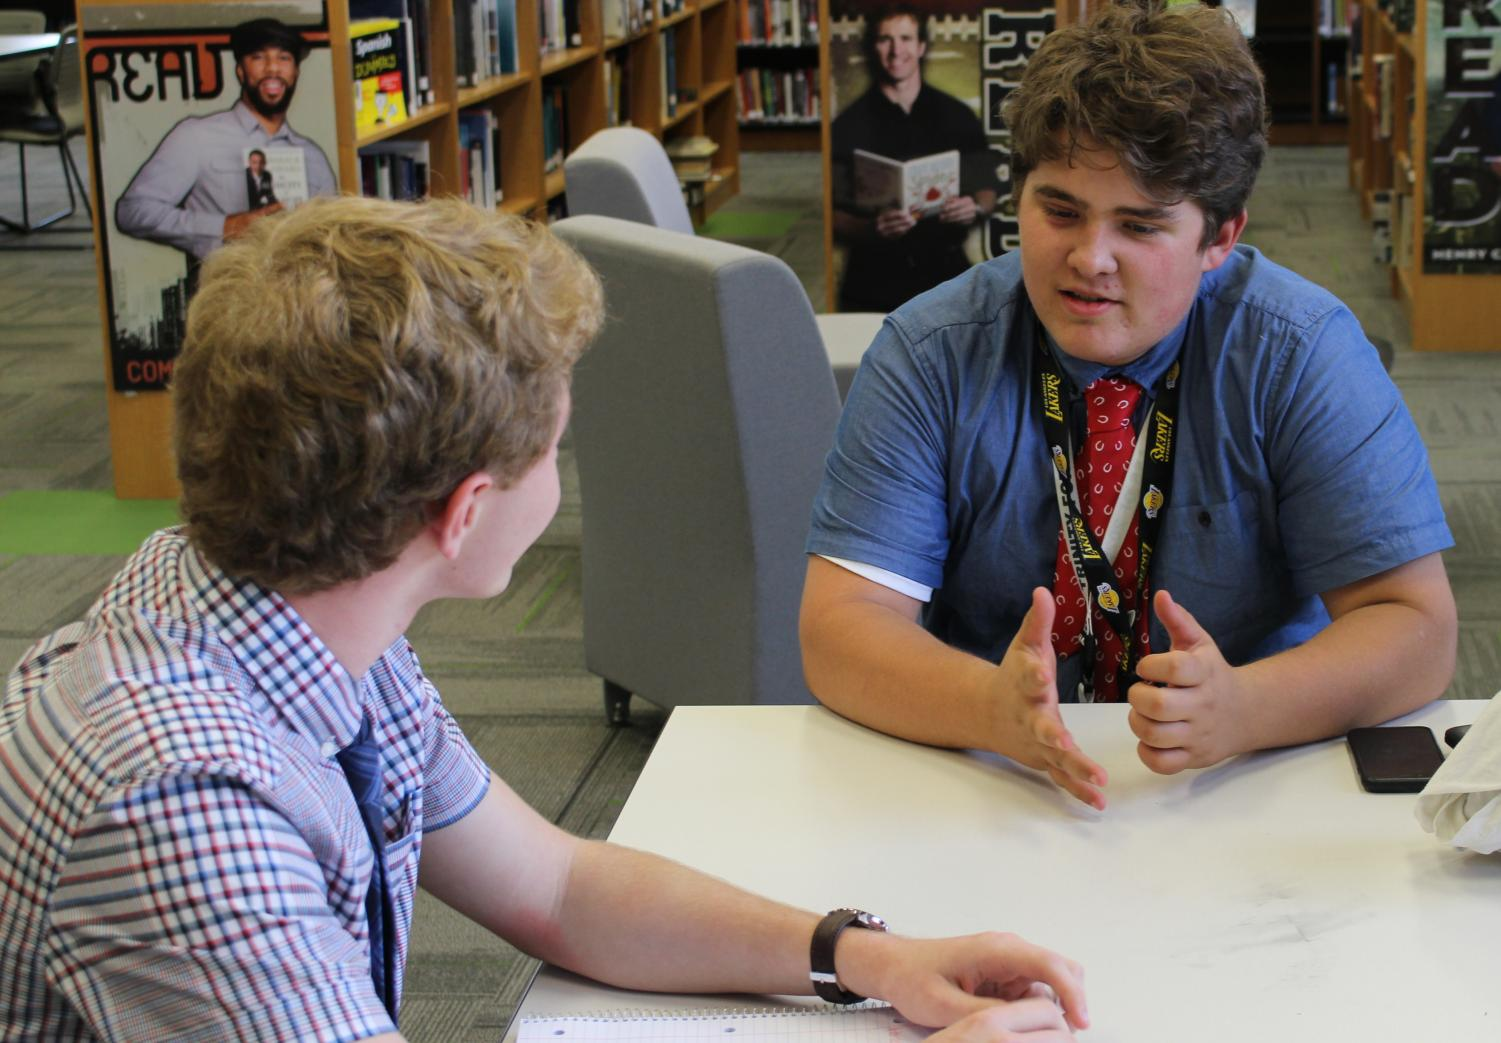 Senior Jack Chauvin, right, talks with reporter Chase Gravatte about becoming a published author of a children's book.